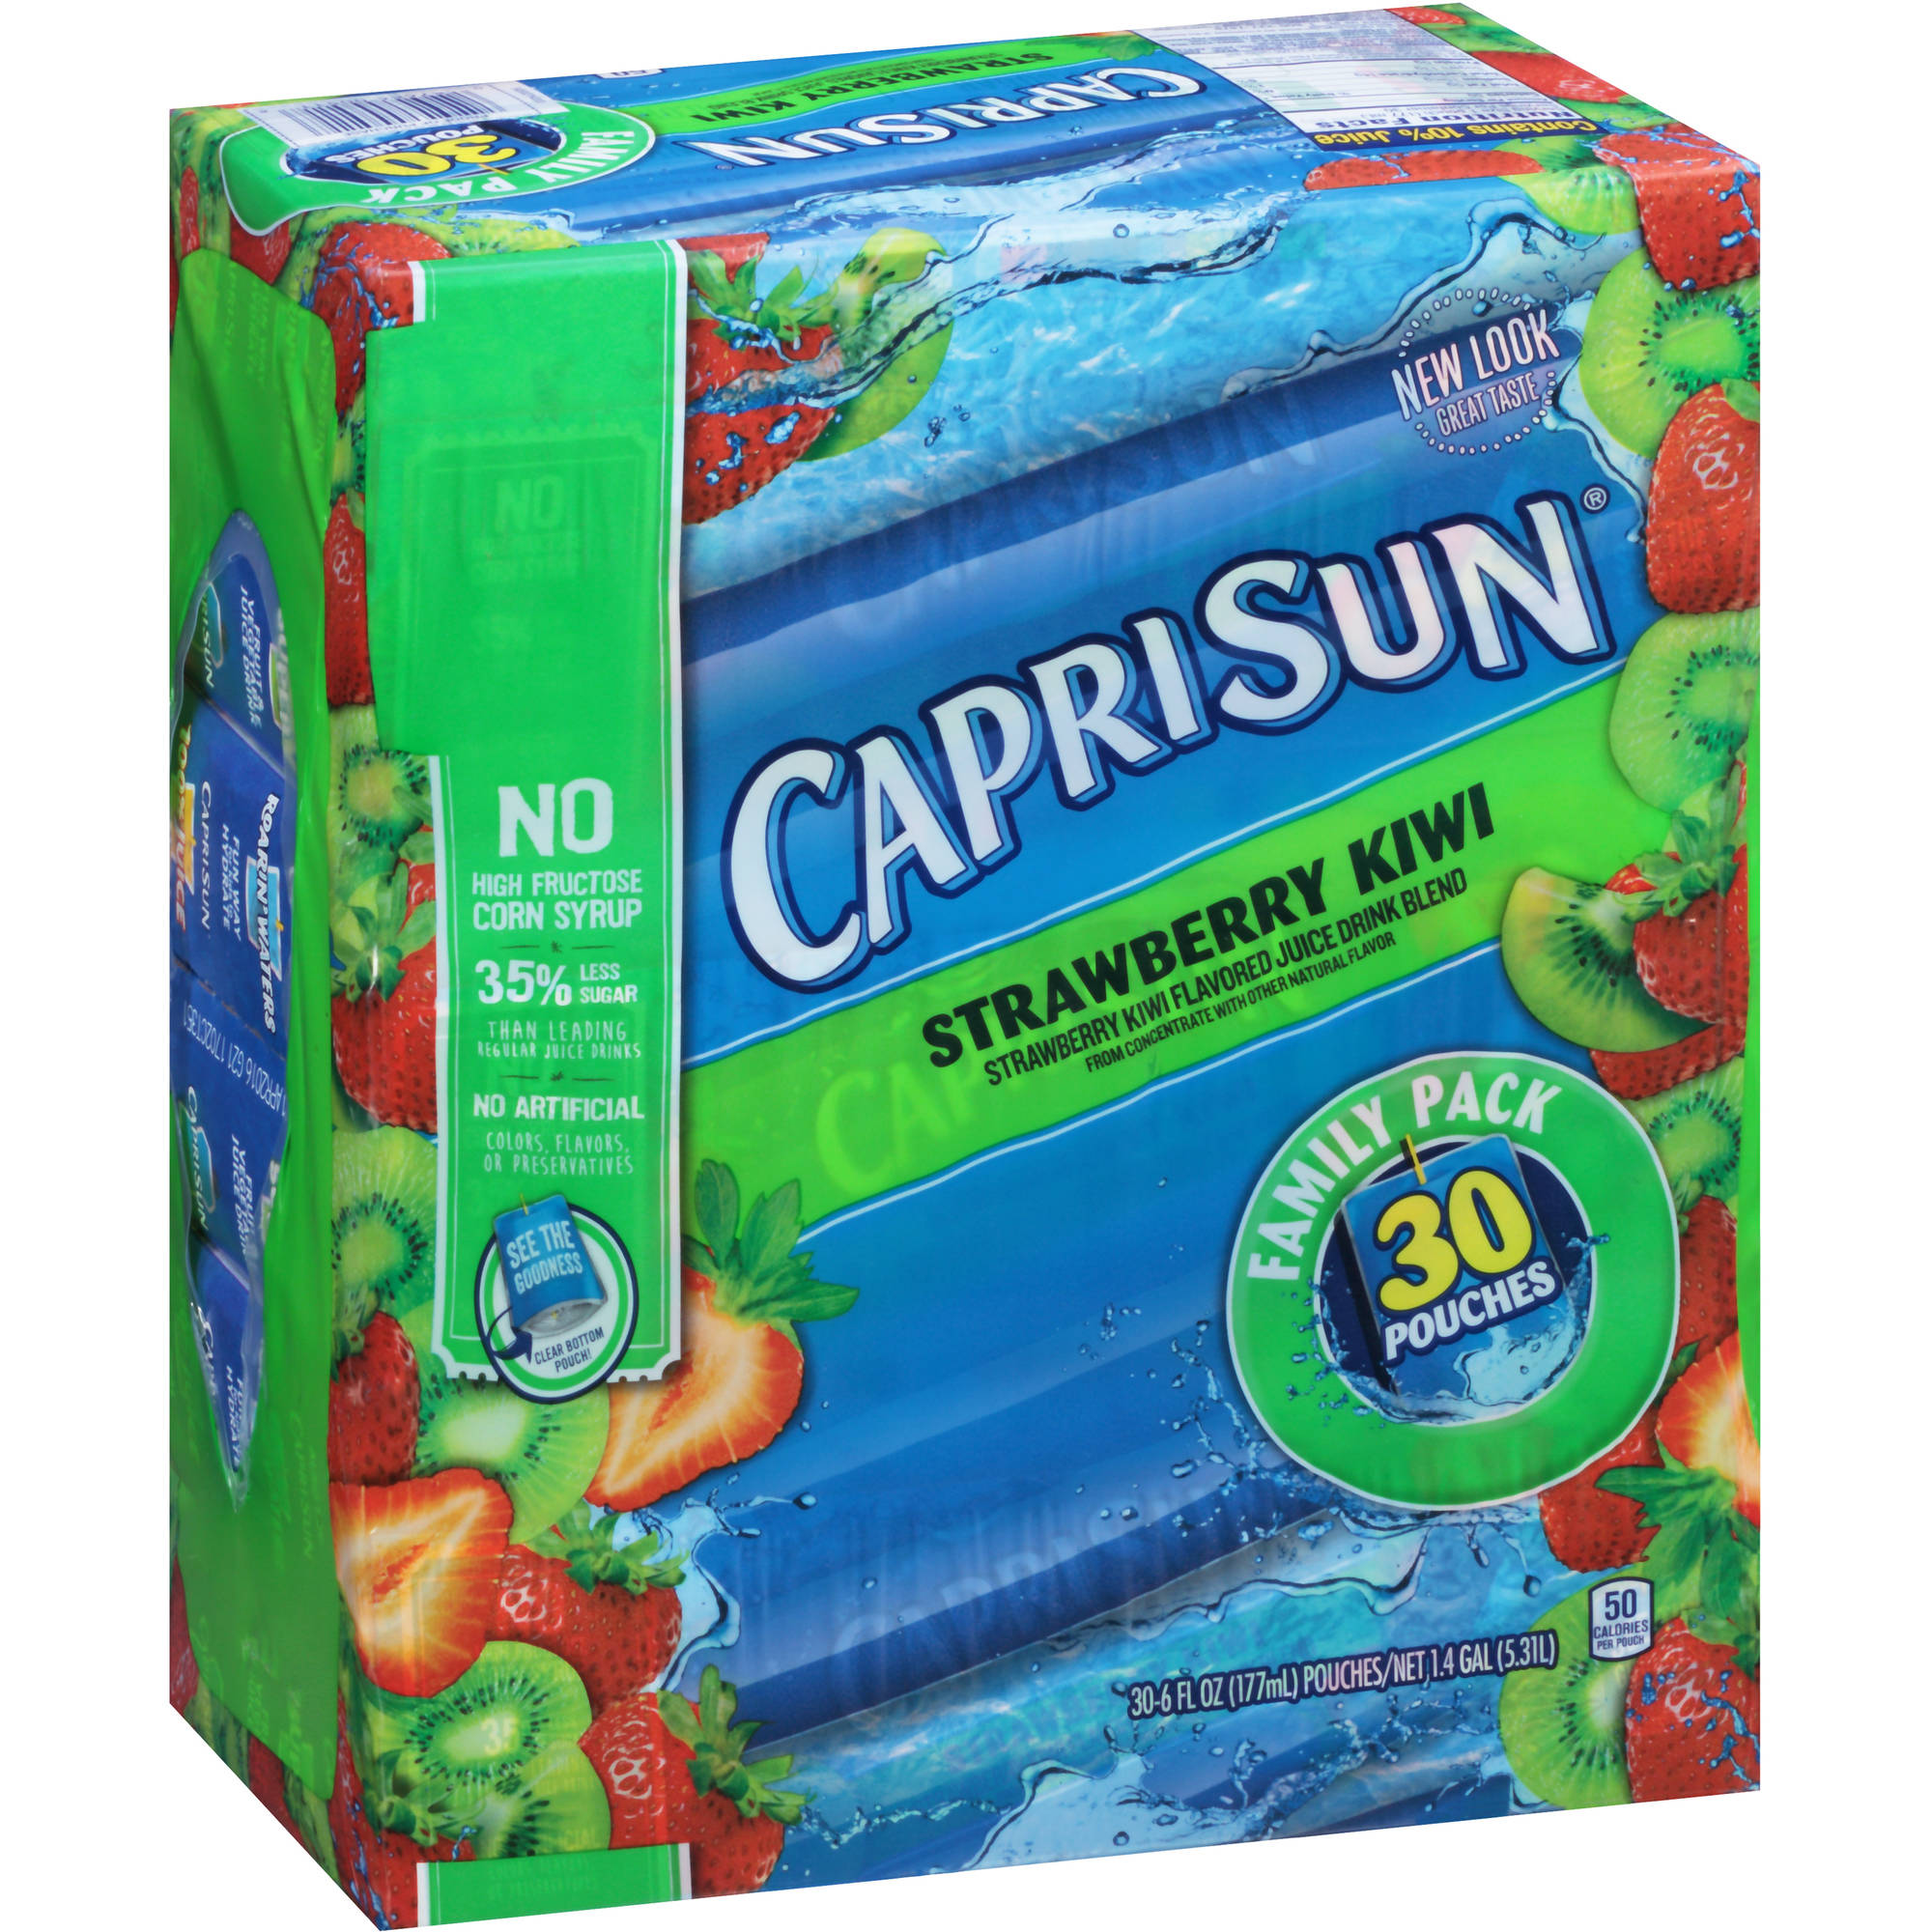 Capri Sun Strawberry Kiwi Juice Drink, 6 fl oz, 30 count